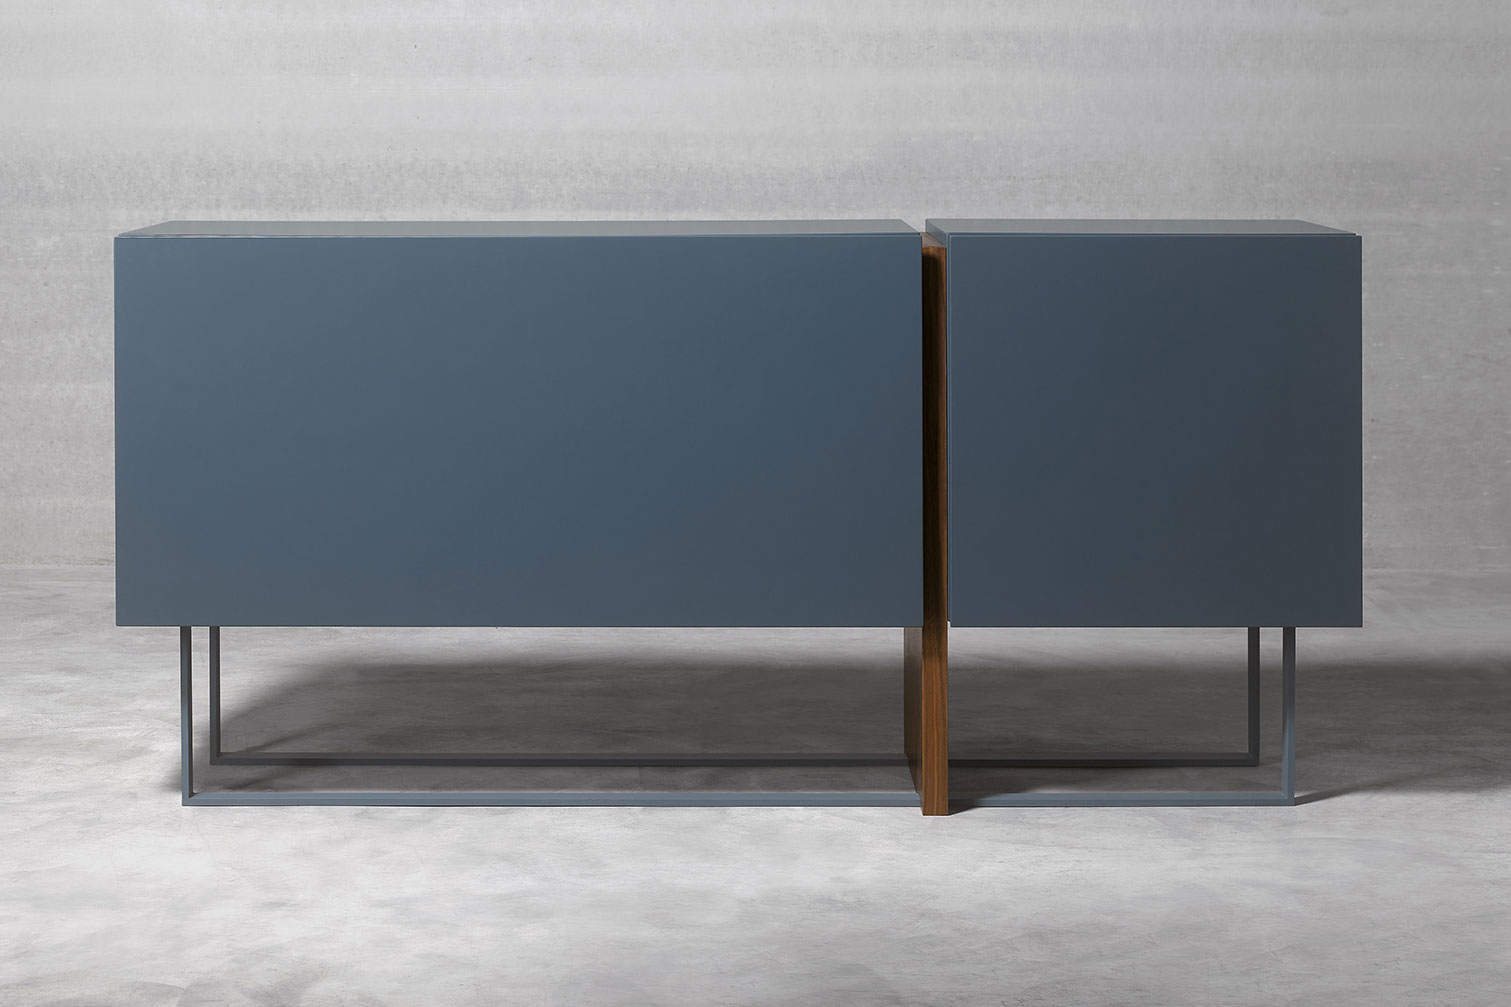 MO-DO sideboard by Michele Mantovani for Colección Alexandra. Photo: Courtesy of Colección Alexandra.